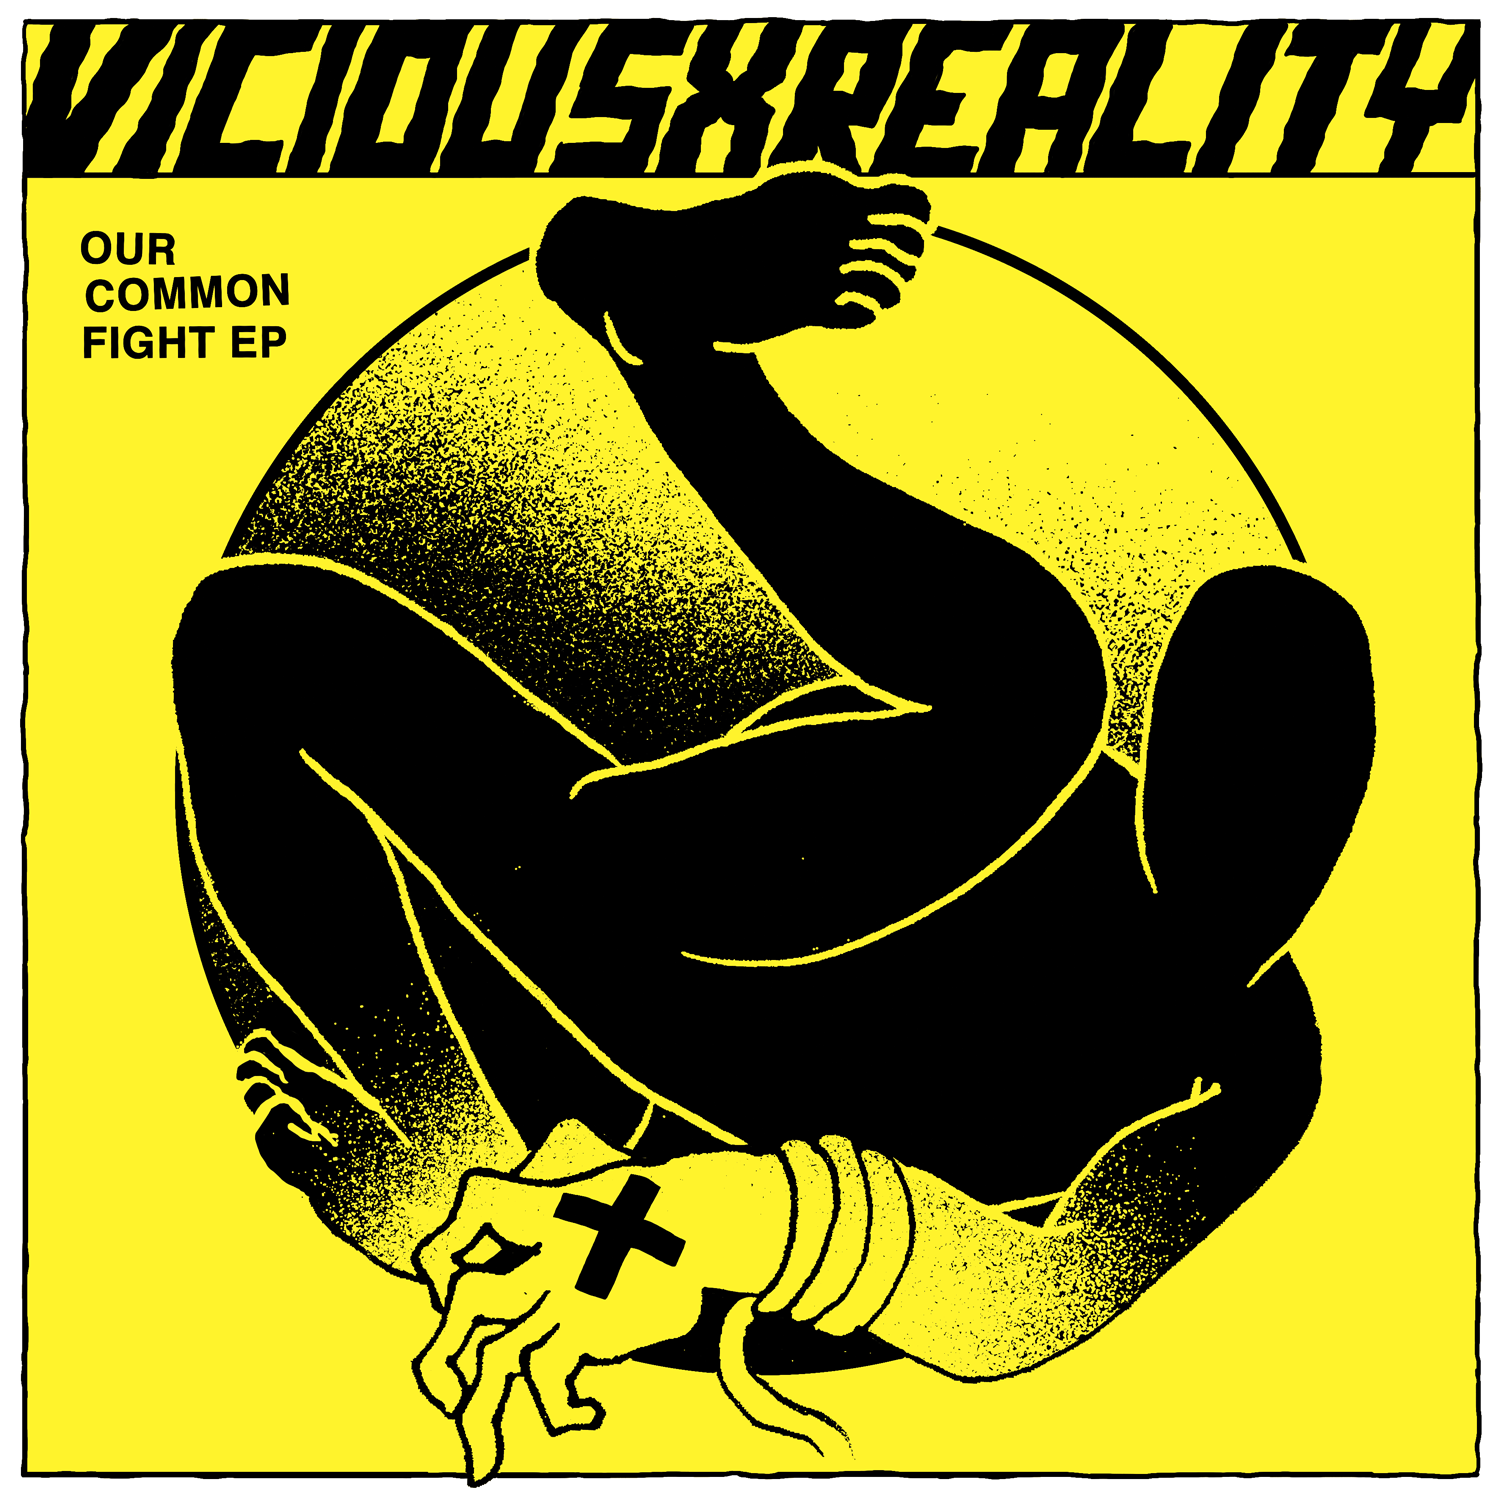 "VICIOUSxREALITY ""Our common fight"" EP   (black)"